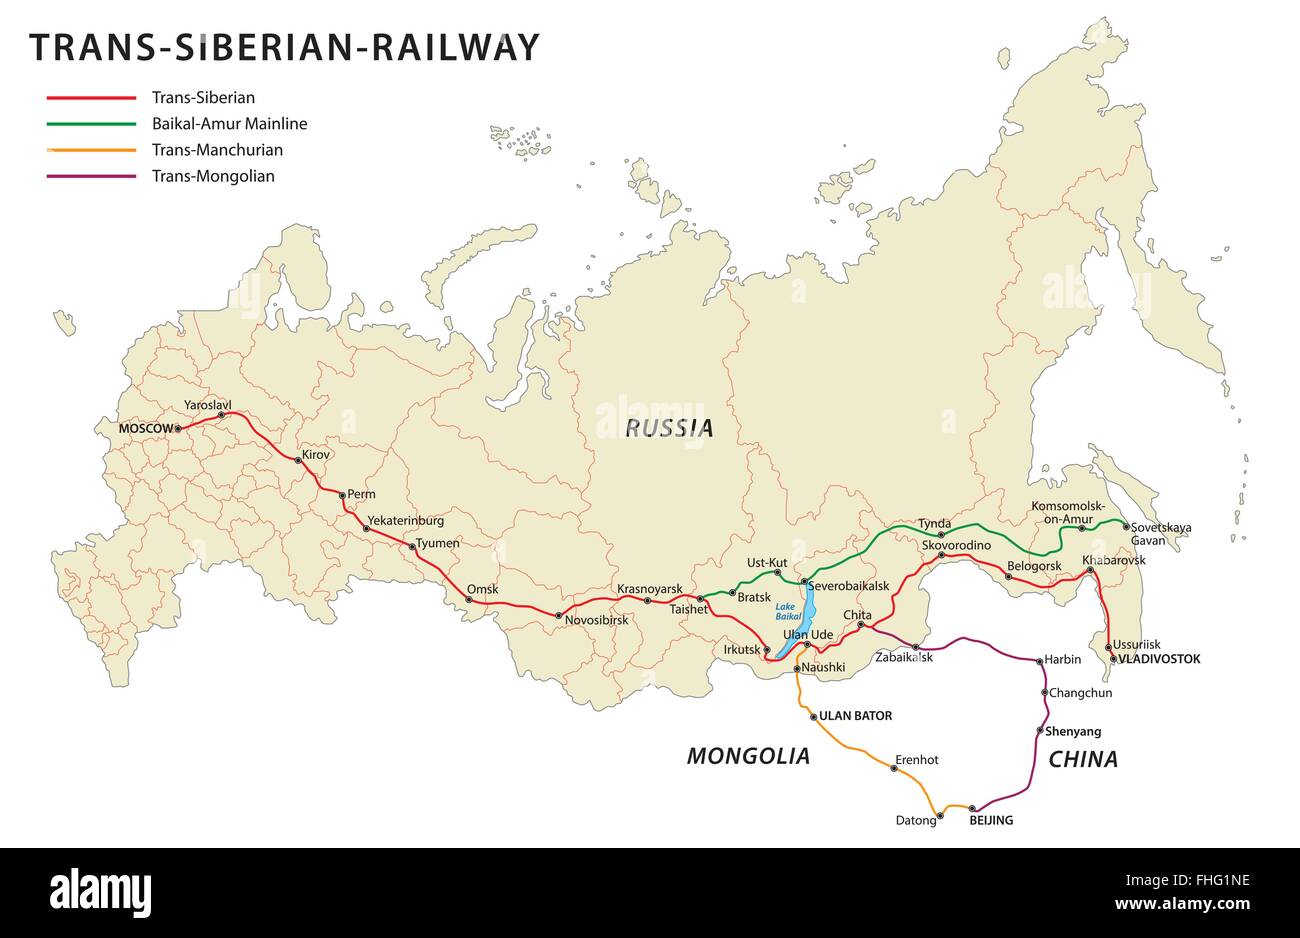 Trans-siberian-railway map Stock Vector Art & Illustration ... on northern europe map, bosnia map, south america map, baikal amur mainline, wales map, st thomas map, arctic ocean map, trans-siberian railway panorama, west siberian railway, brazil map, republic of georgia map, india map, orient express, cyprus map, central asia map, south africa map, central europe map, saint petersburg, ural mountains map, west africa map, greenland map, moscow map, caribbean cruise map, caucasus mountains map, russia map,